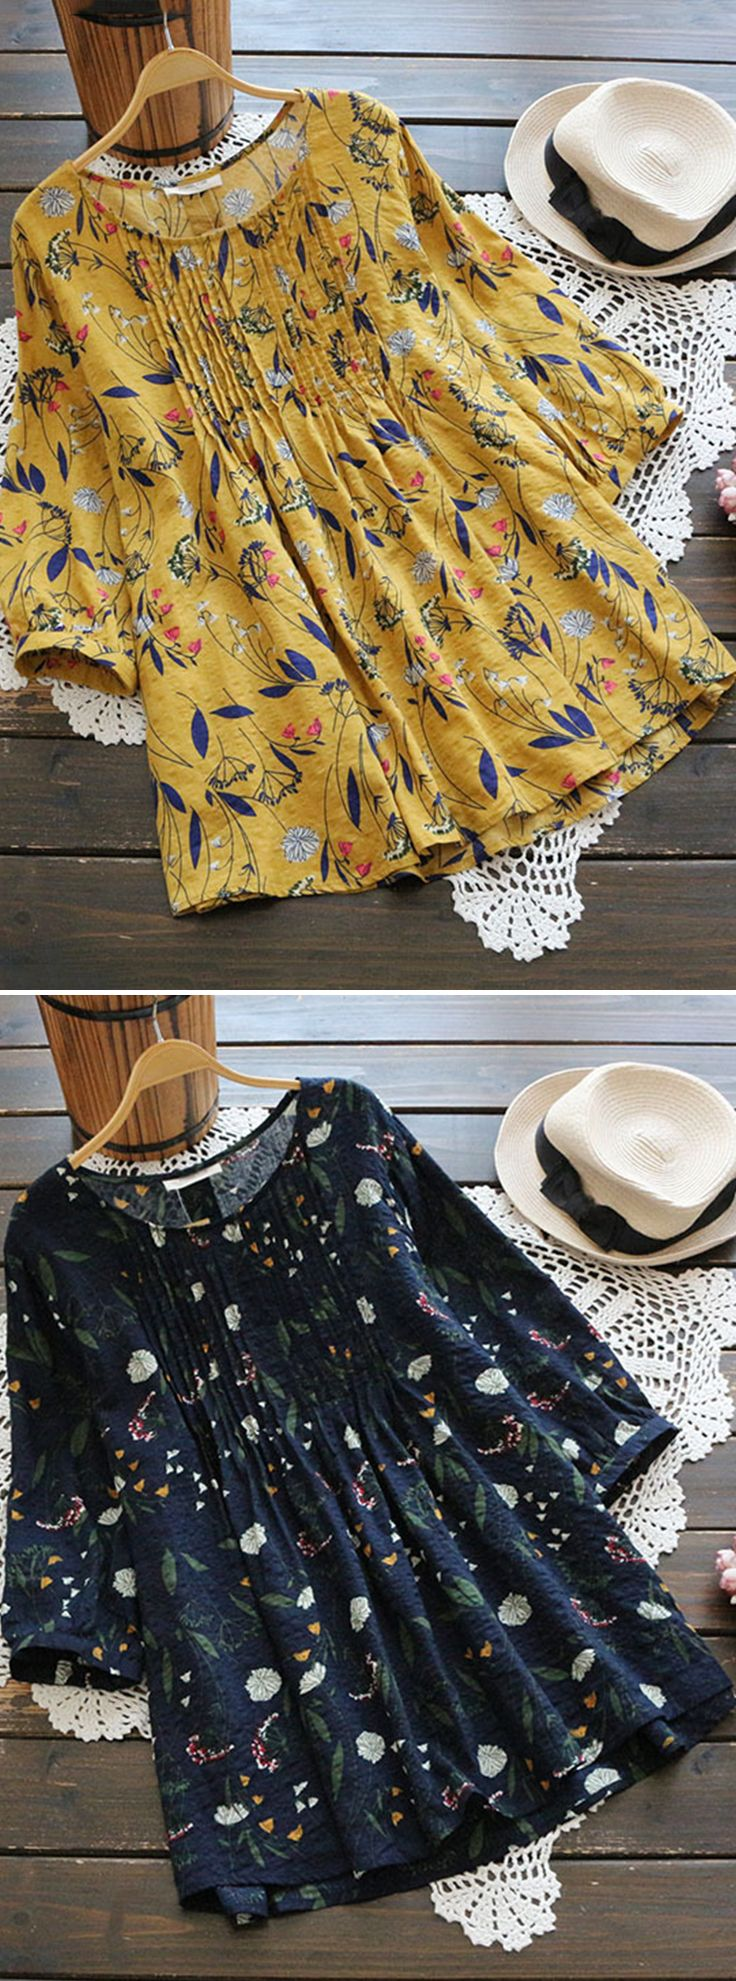 50% OFF! US$21.89 Women Floral Printed 3/4 Sleeve Vintage Blouses. SHOP NOW!